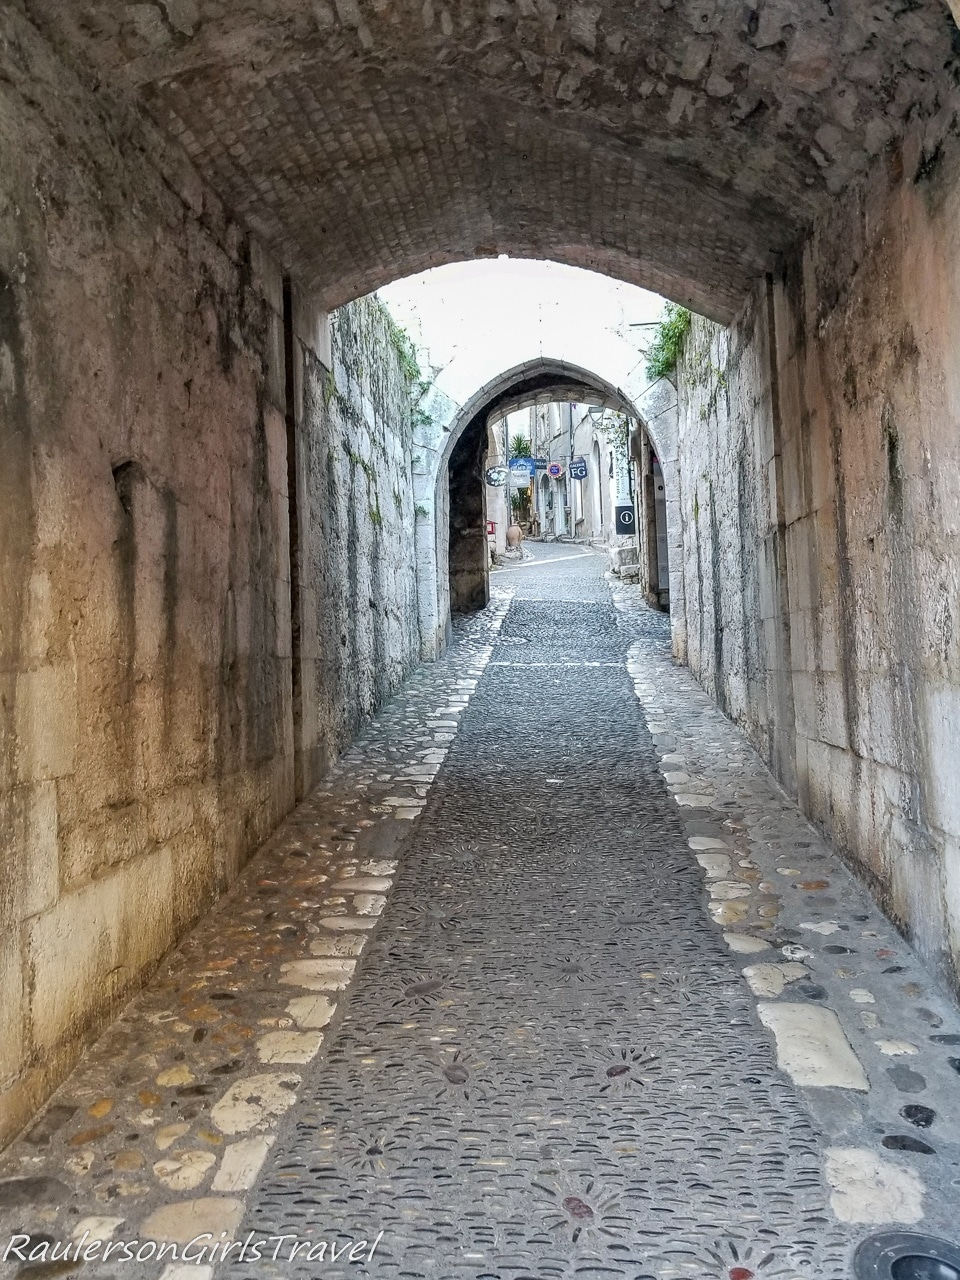 The long archway into the village of St. Paul de Vence